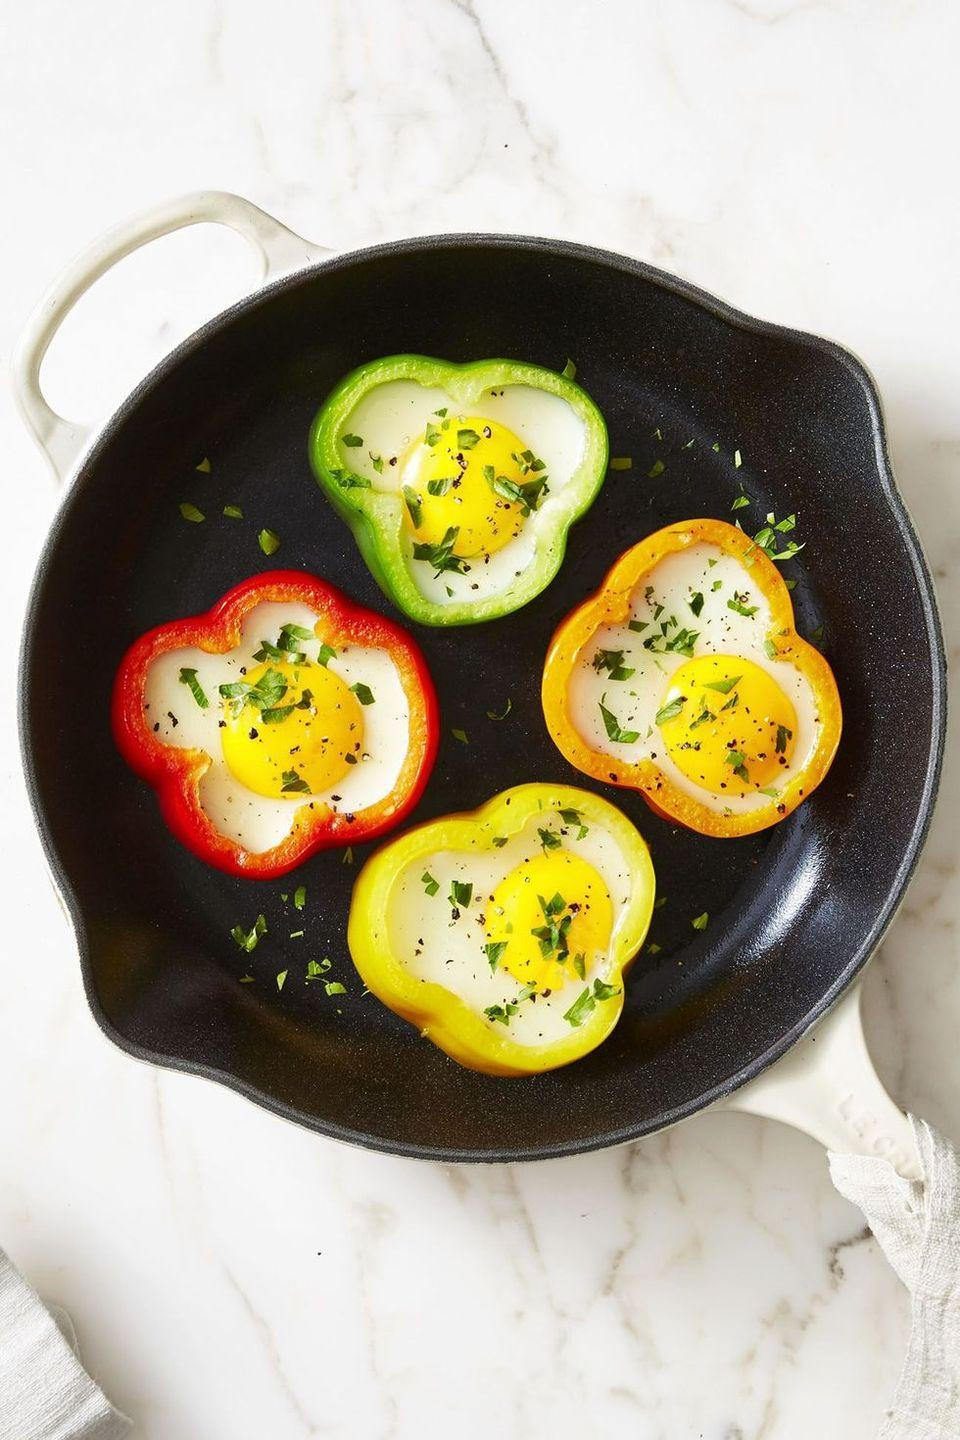 """<p>Think of this dish like eggs in a hole, but with more veggies.</p><p><em><a href=""""https://www.goodhousekeeping.com/food-recipes/a42847/flower-power-sunny-side-eggs-recipe/"""" rel=""""nofollow noopener"""" target=""""_blank"""" data-ylk=""""slk:Get the recipe for Flower Power Sunny-Side Eggs »"""" class=""""link rapid-noclick-resp"""">Get the recipe for Flower Power Sunny-Side Eggs »</a></em></p>"""